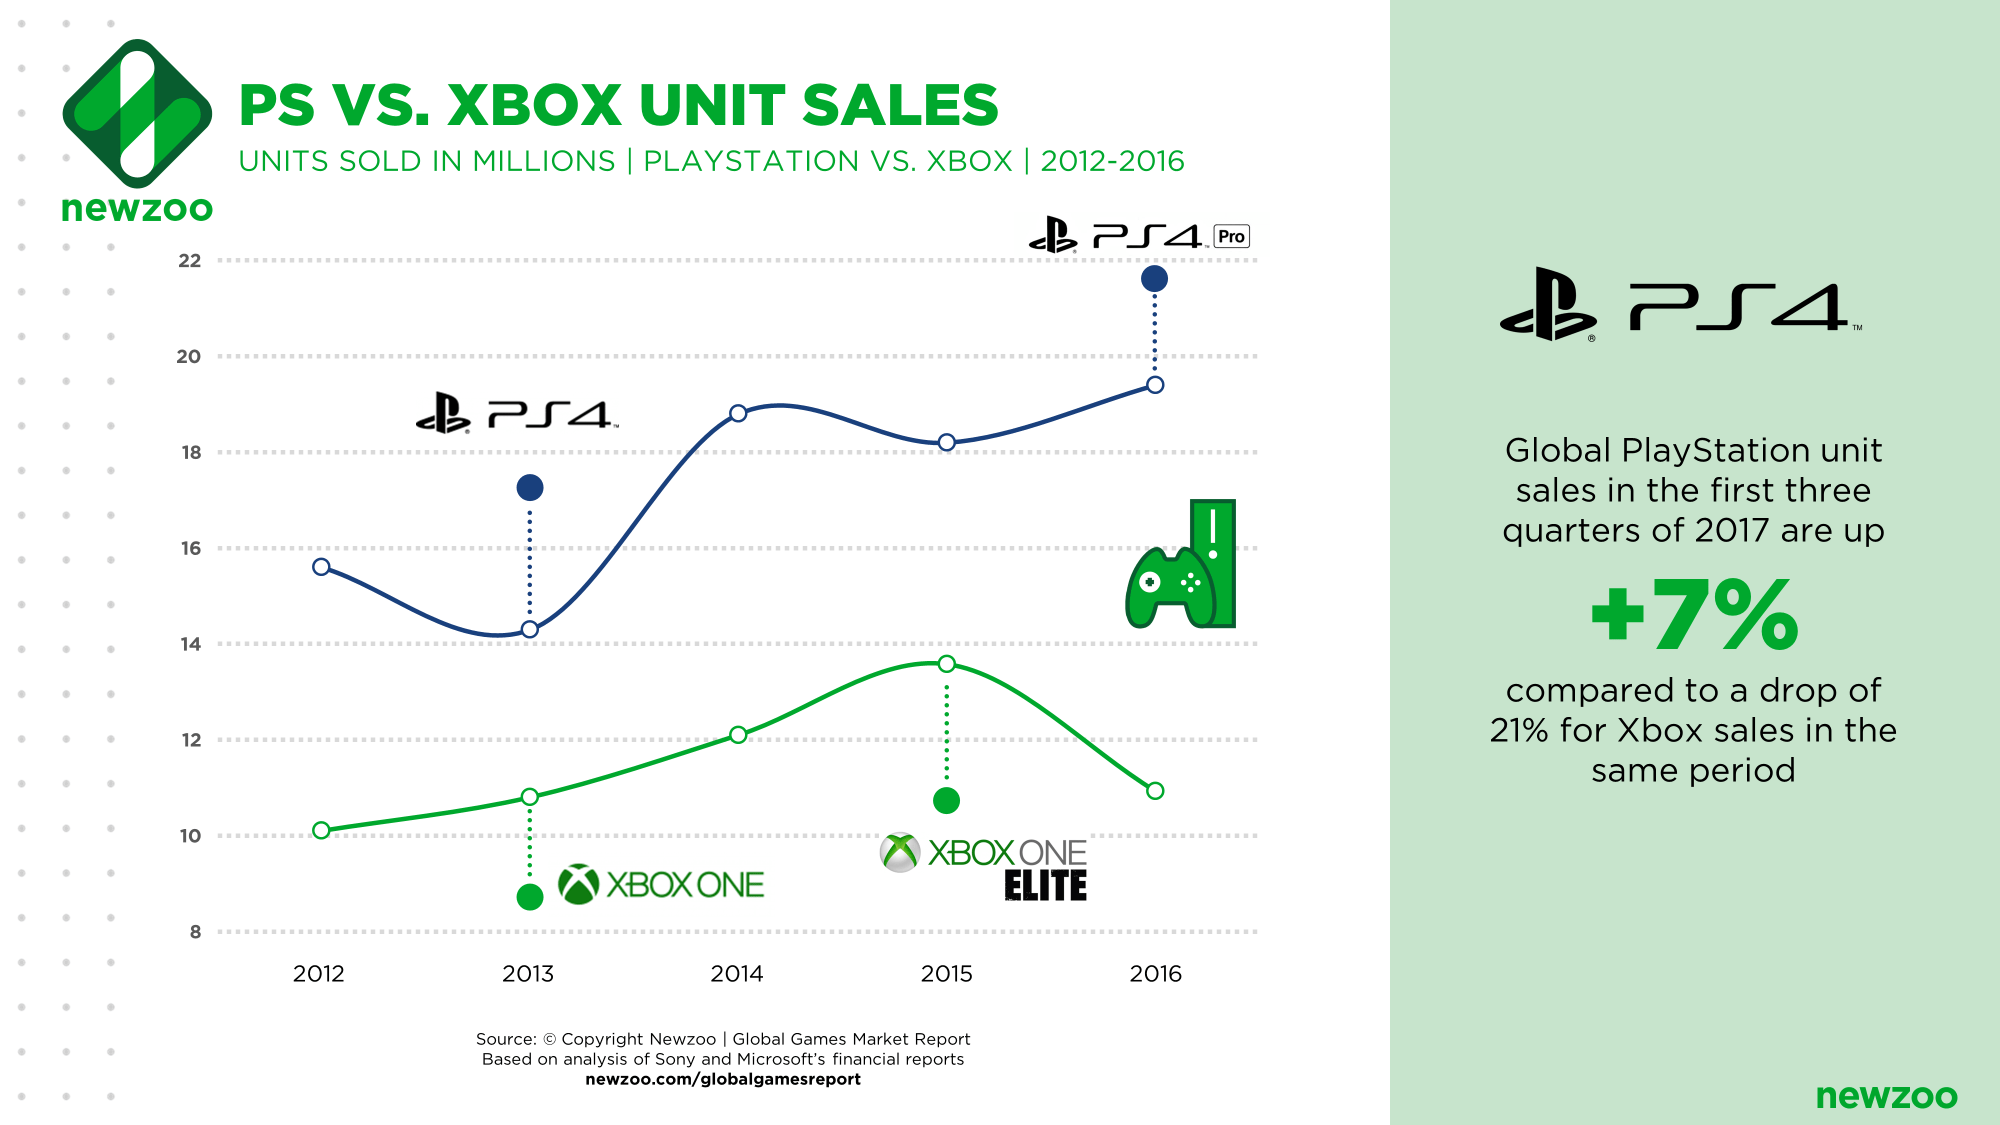 hight resolution of meanwhile xbox unit sales have been down since 2016 the xbox one x plays a crucial role in reversing this trend and closing the gap with playstation